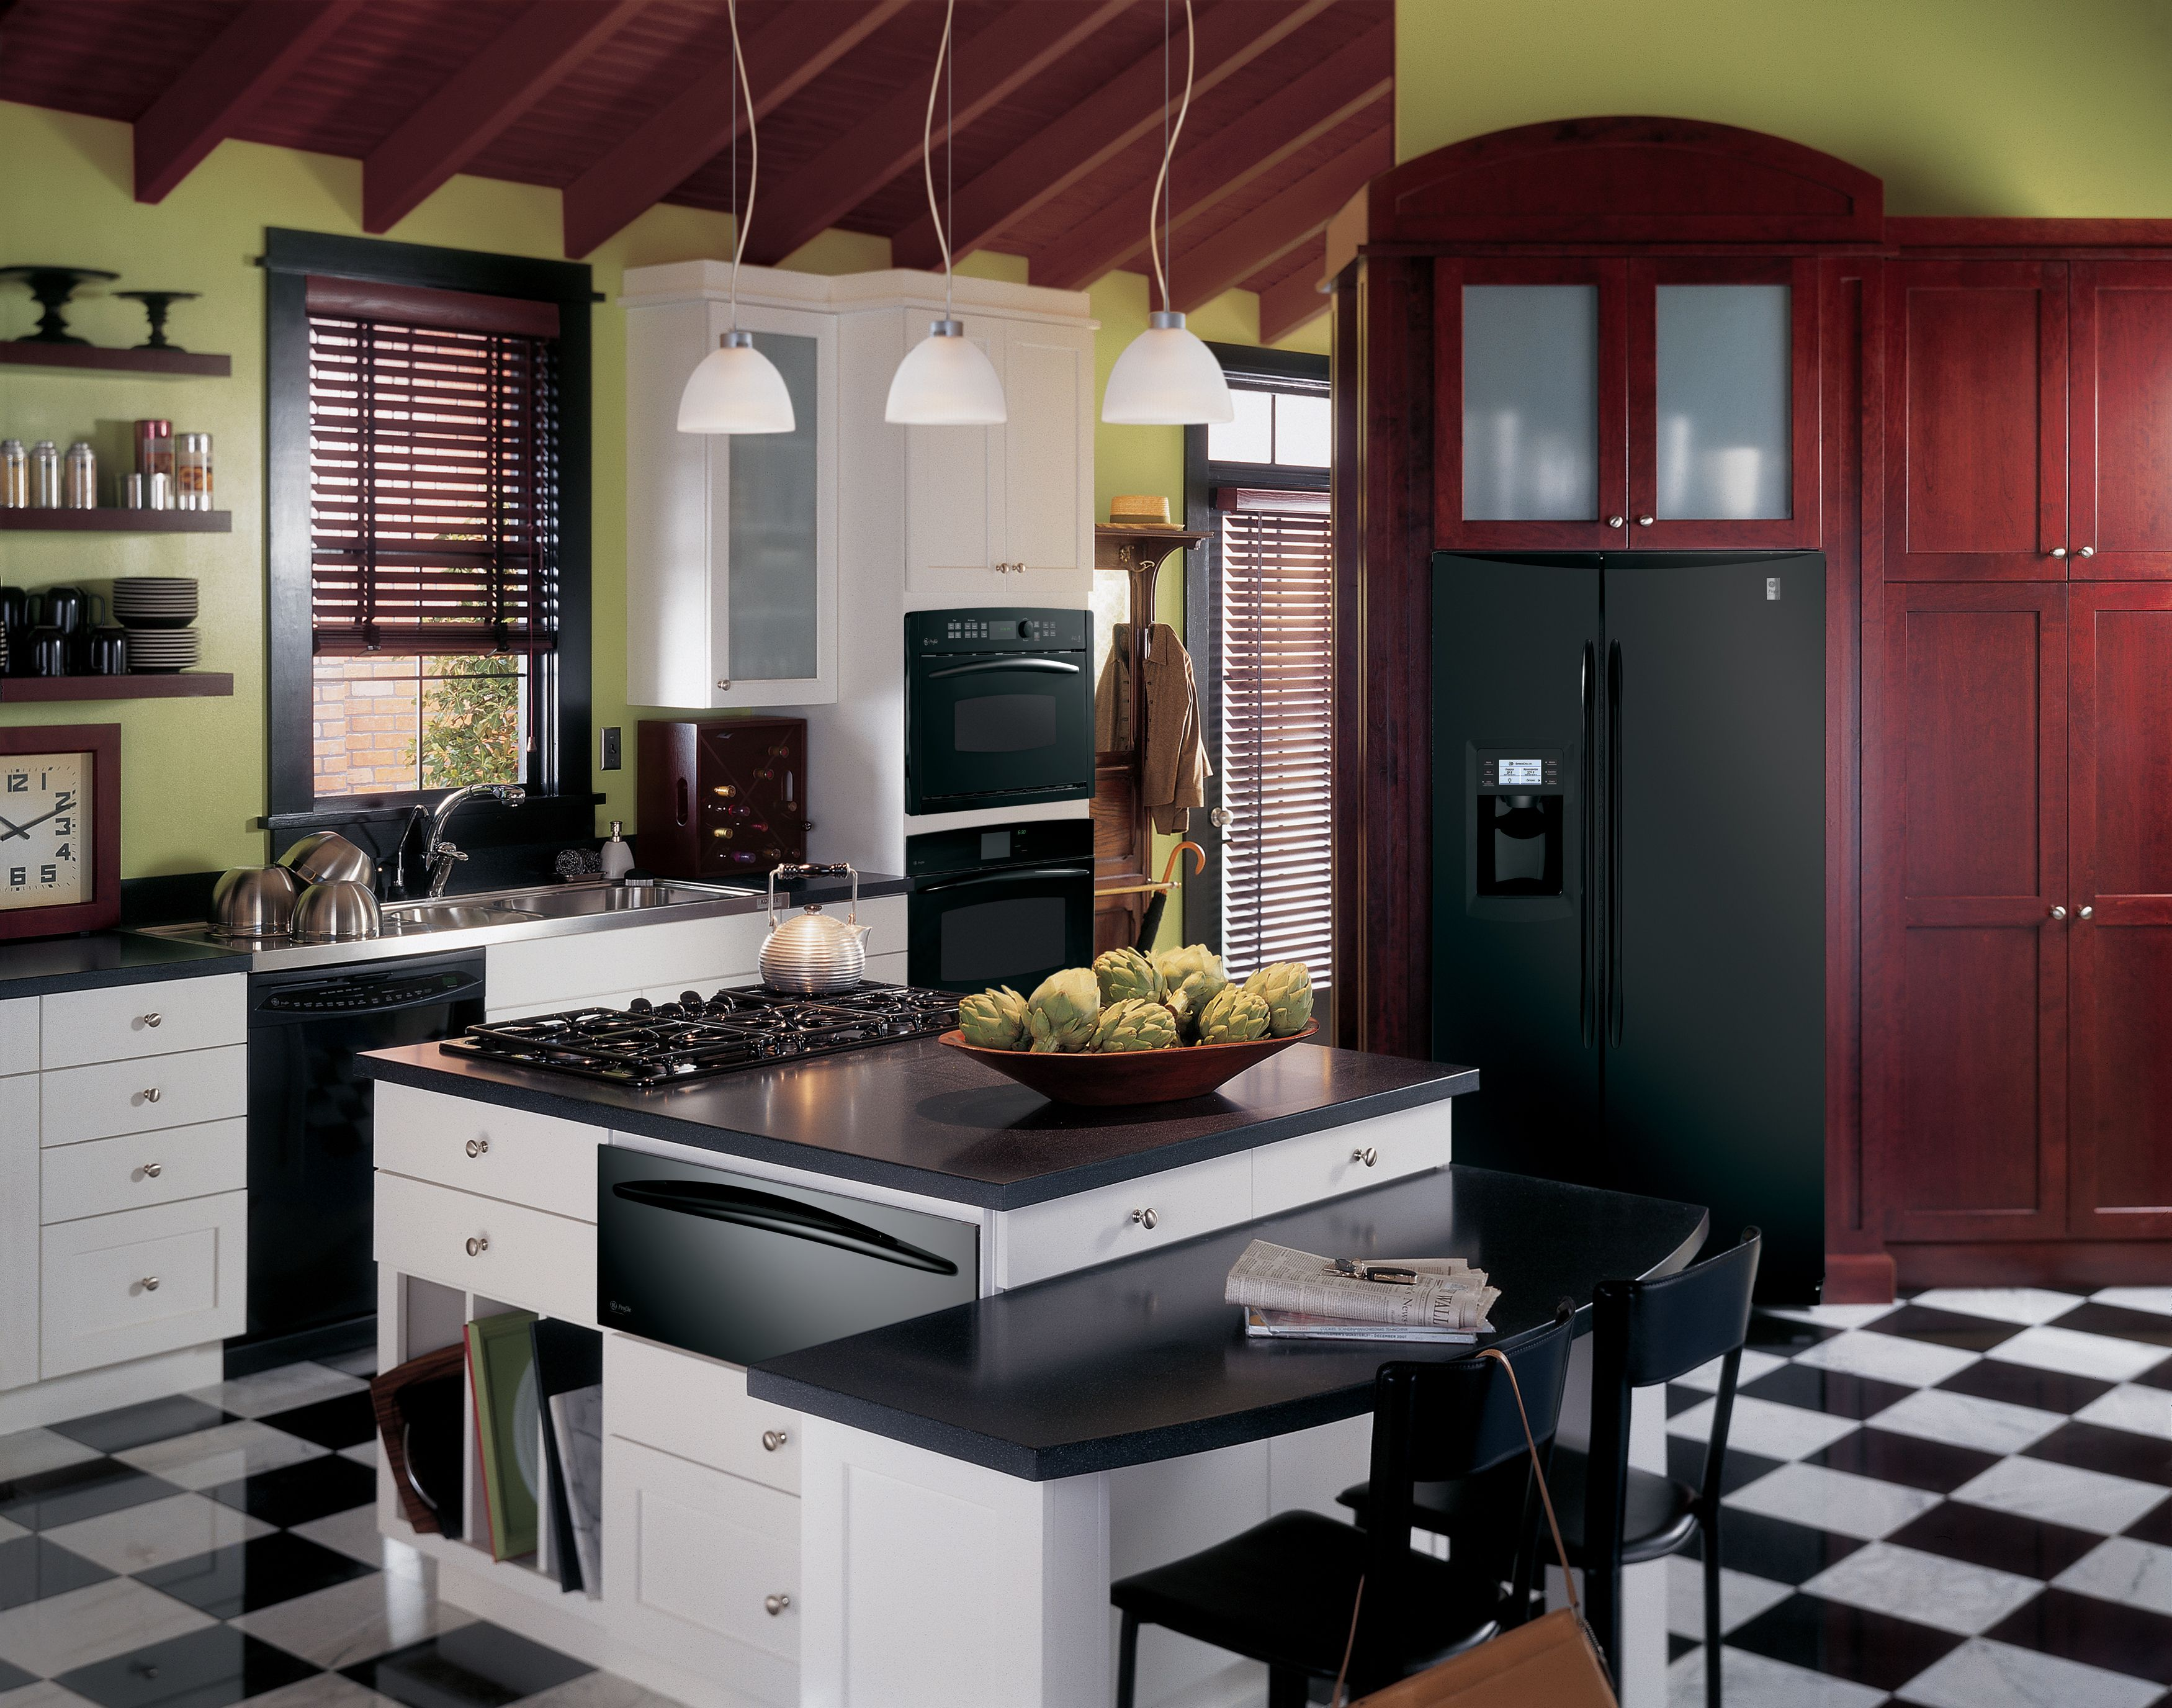 Ge profile kitchen with black appliances green walls - Black red and white kitchen designs ...